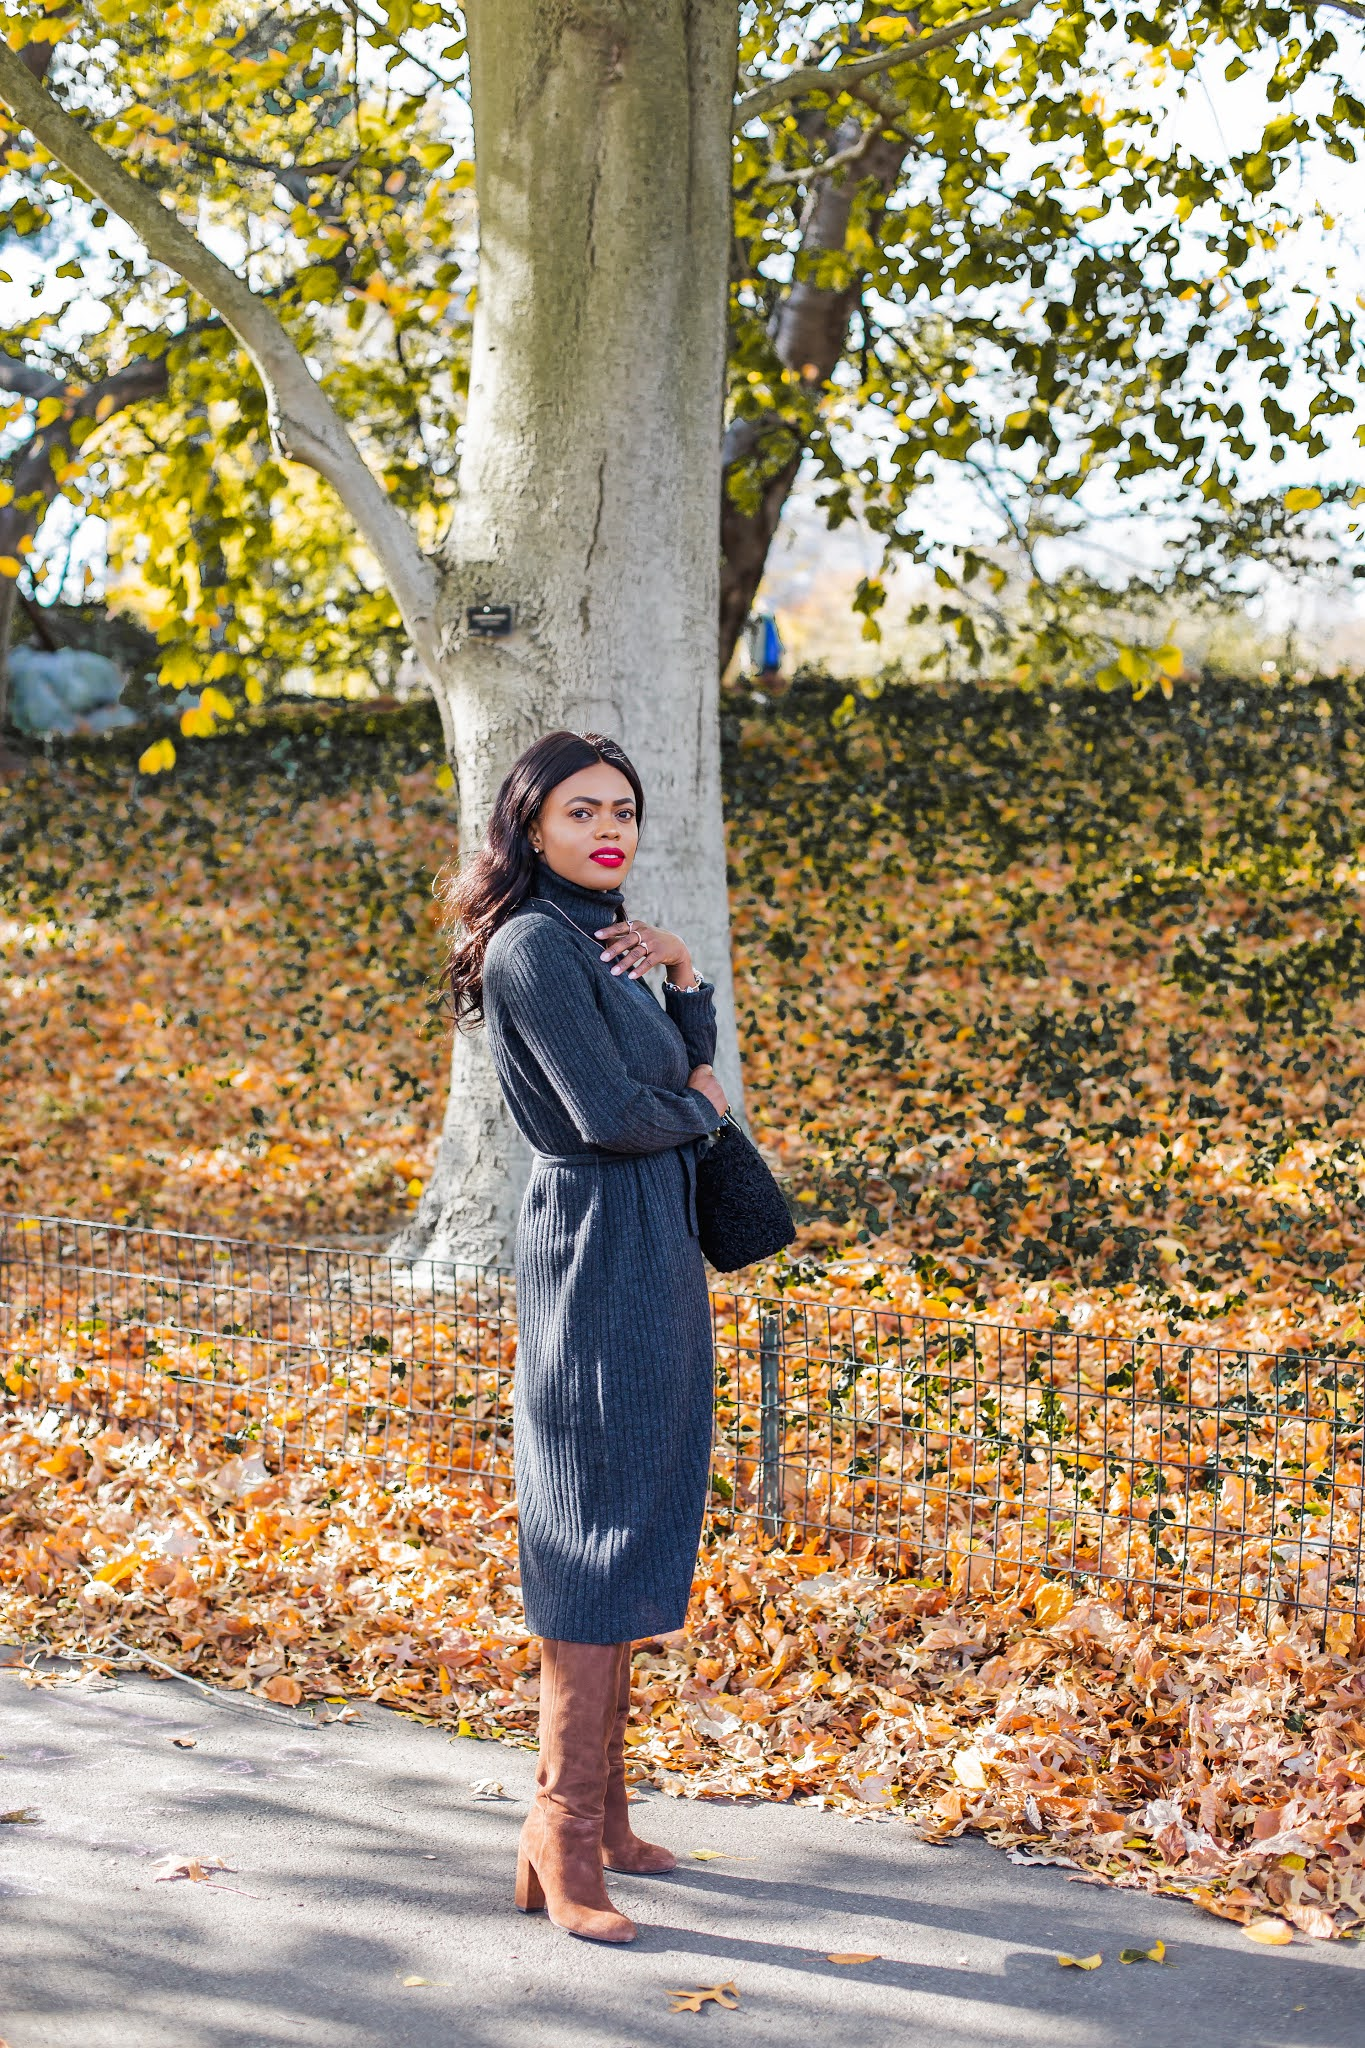 The Cashmere Knit Dress You Need This Winter